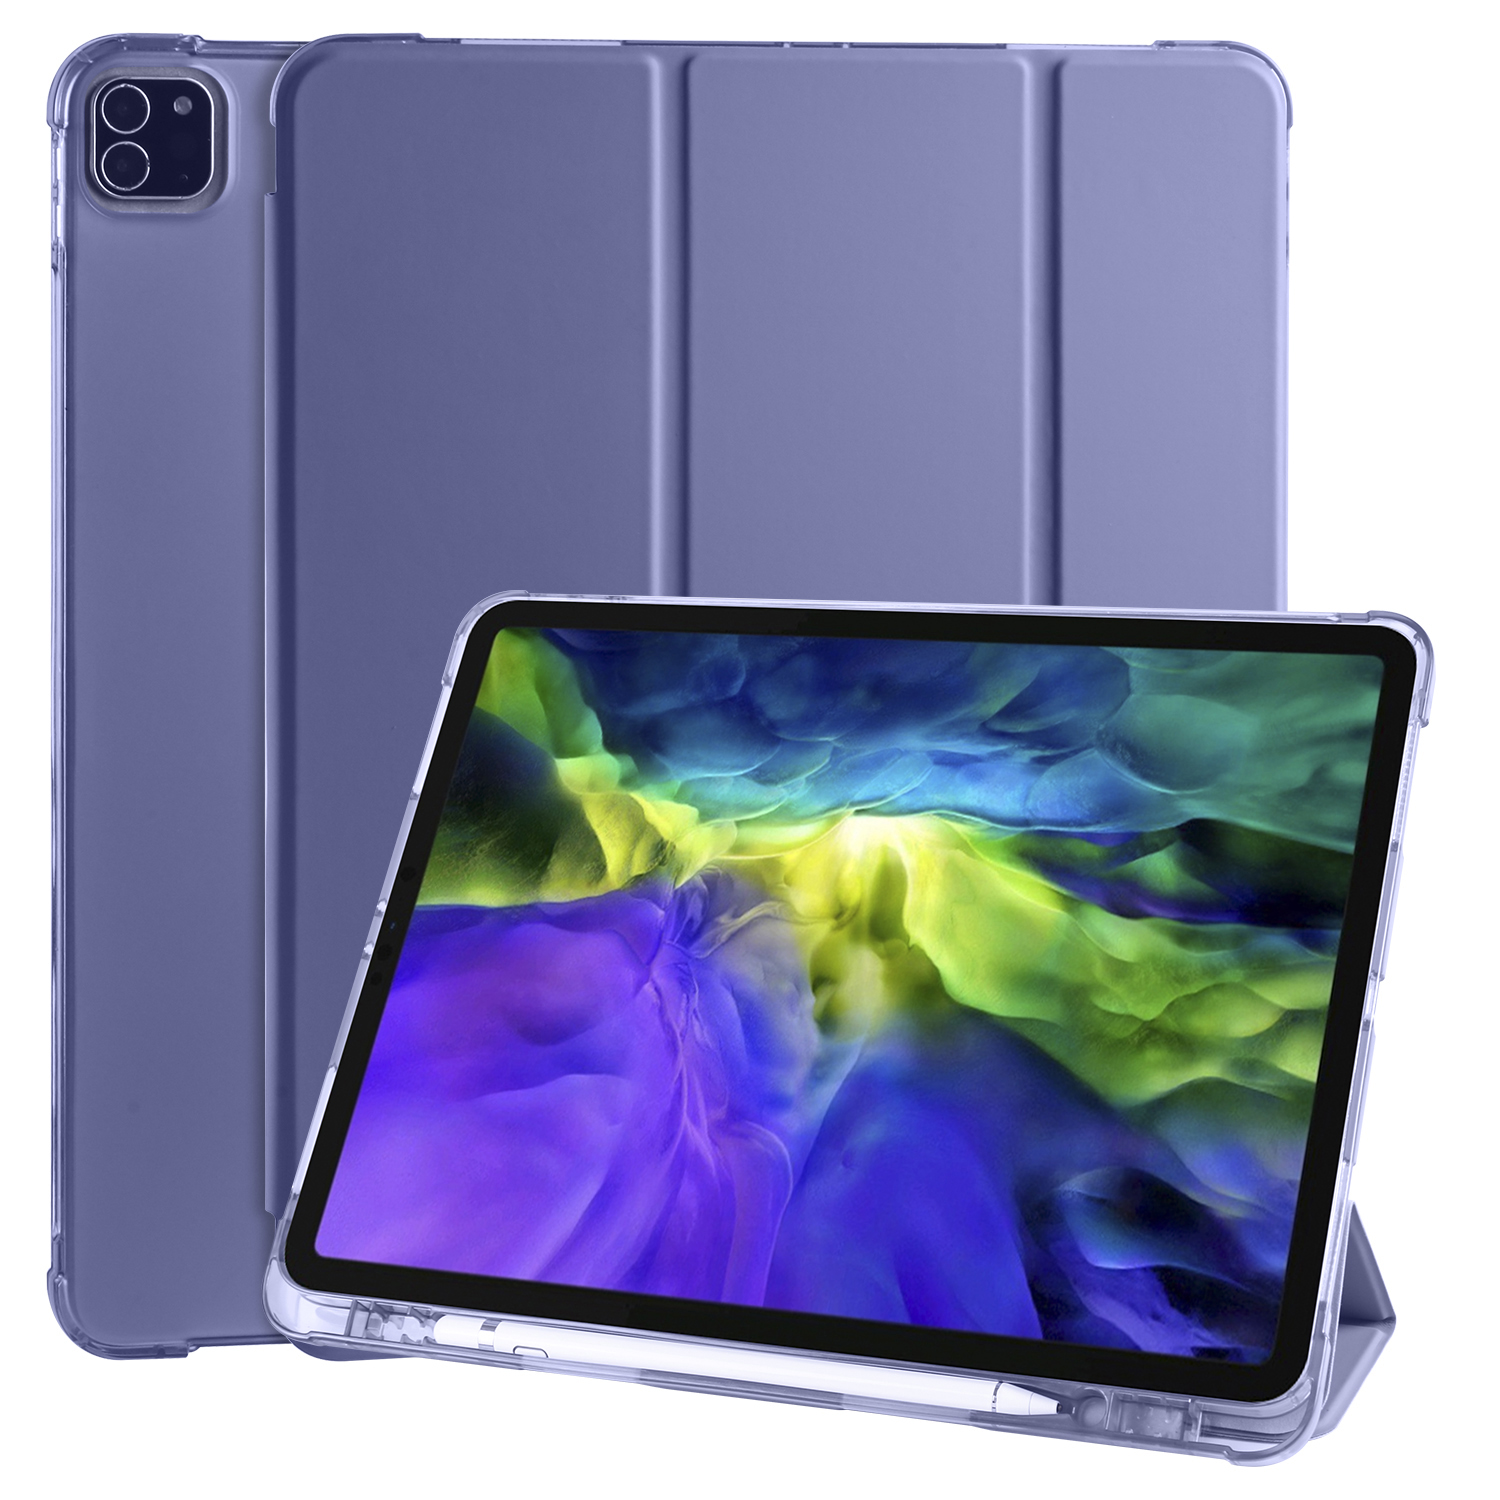 4th Shockproof for Pen Pro 2018 Slot Smart Soft 2020 Case iPad with 3rd Generation 12.9